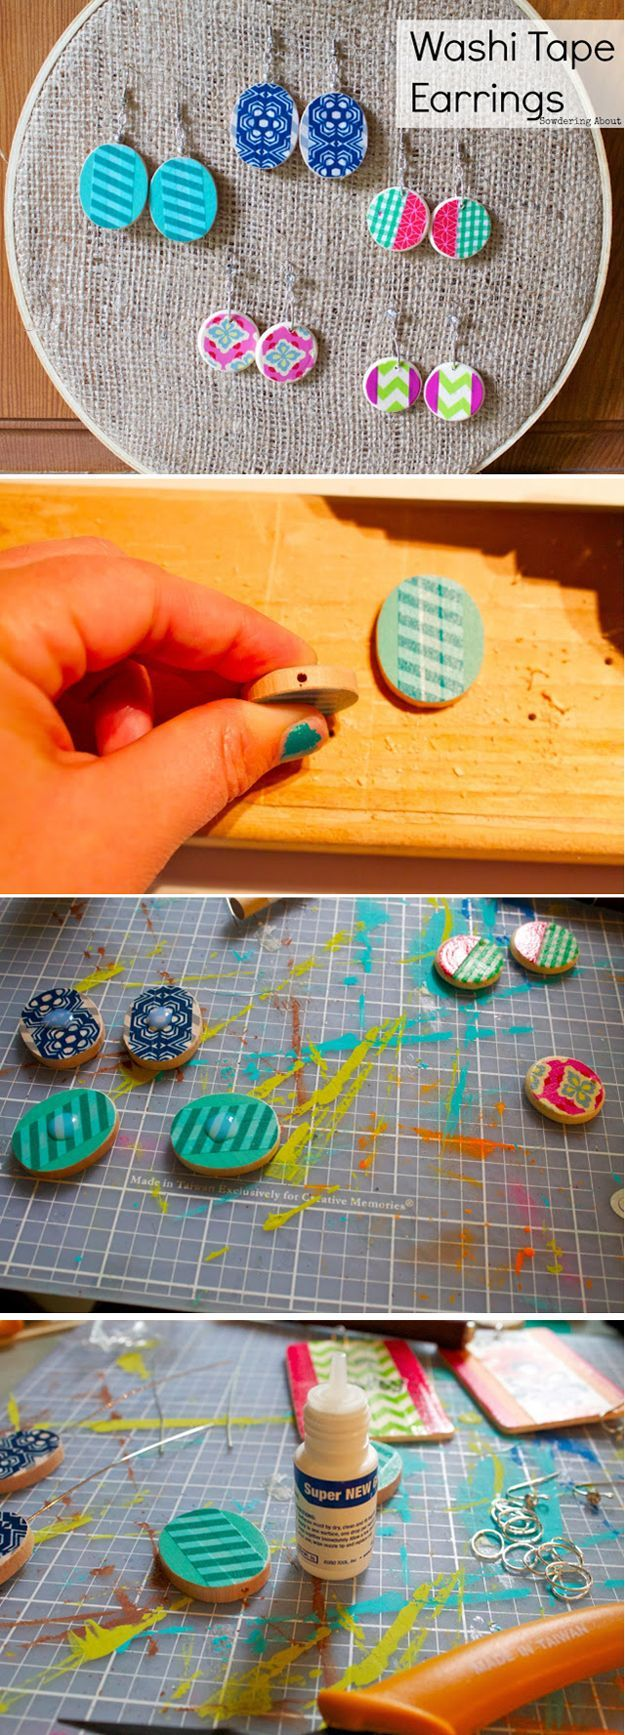 Cheap and Creative DIY Jewelry with Washi Tape | https://diyprojects.com/100-creative-ways-to-use-washi-tape/